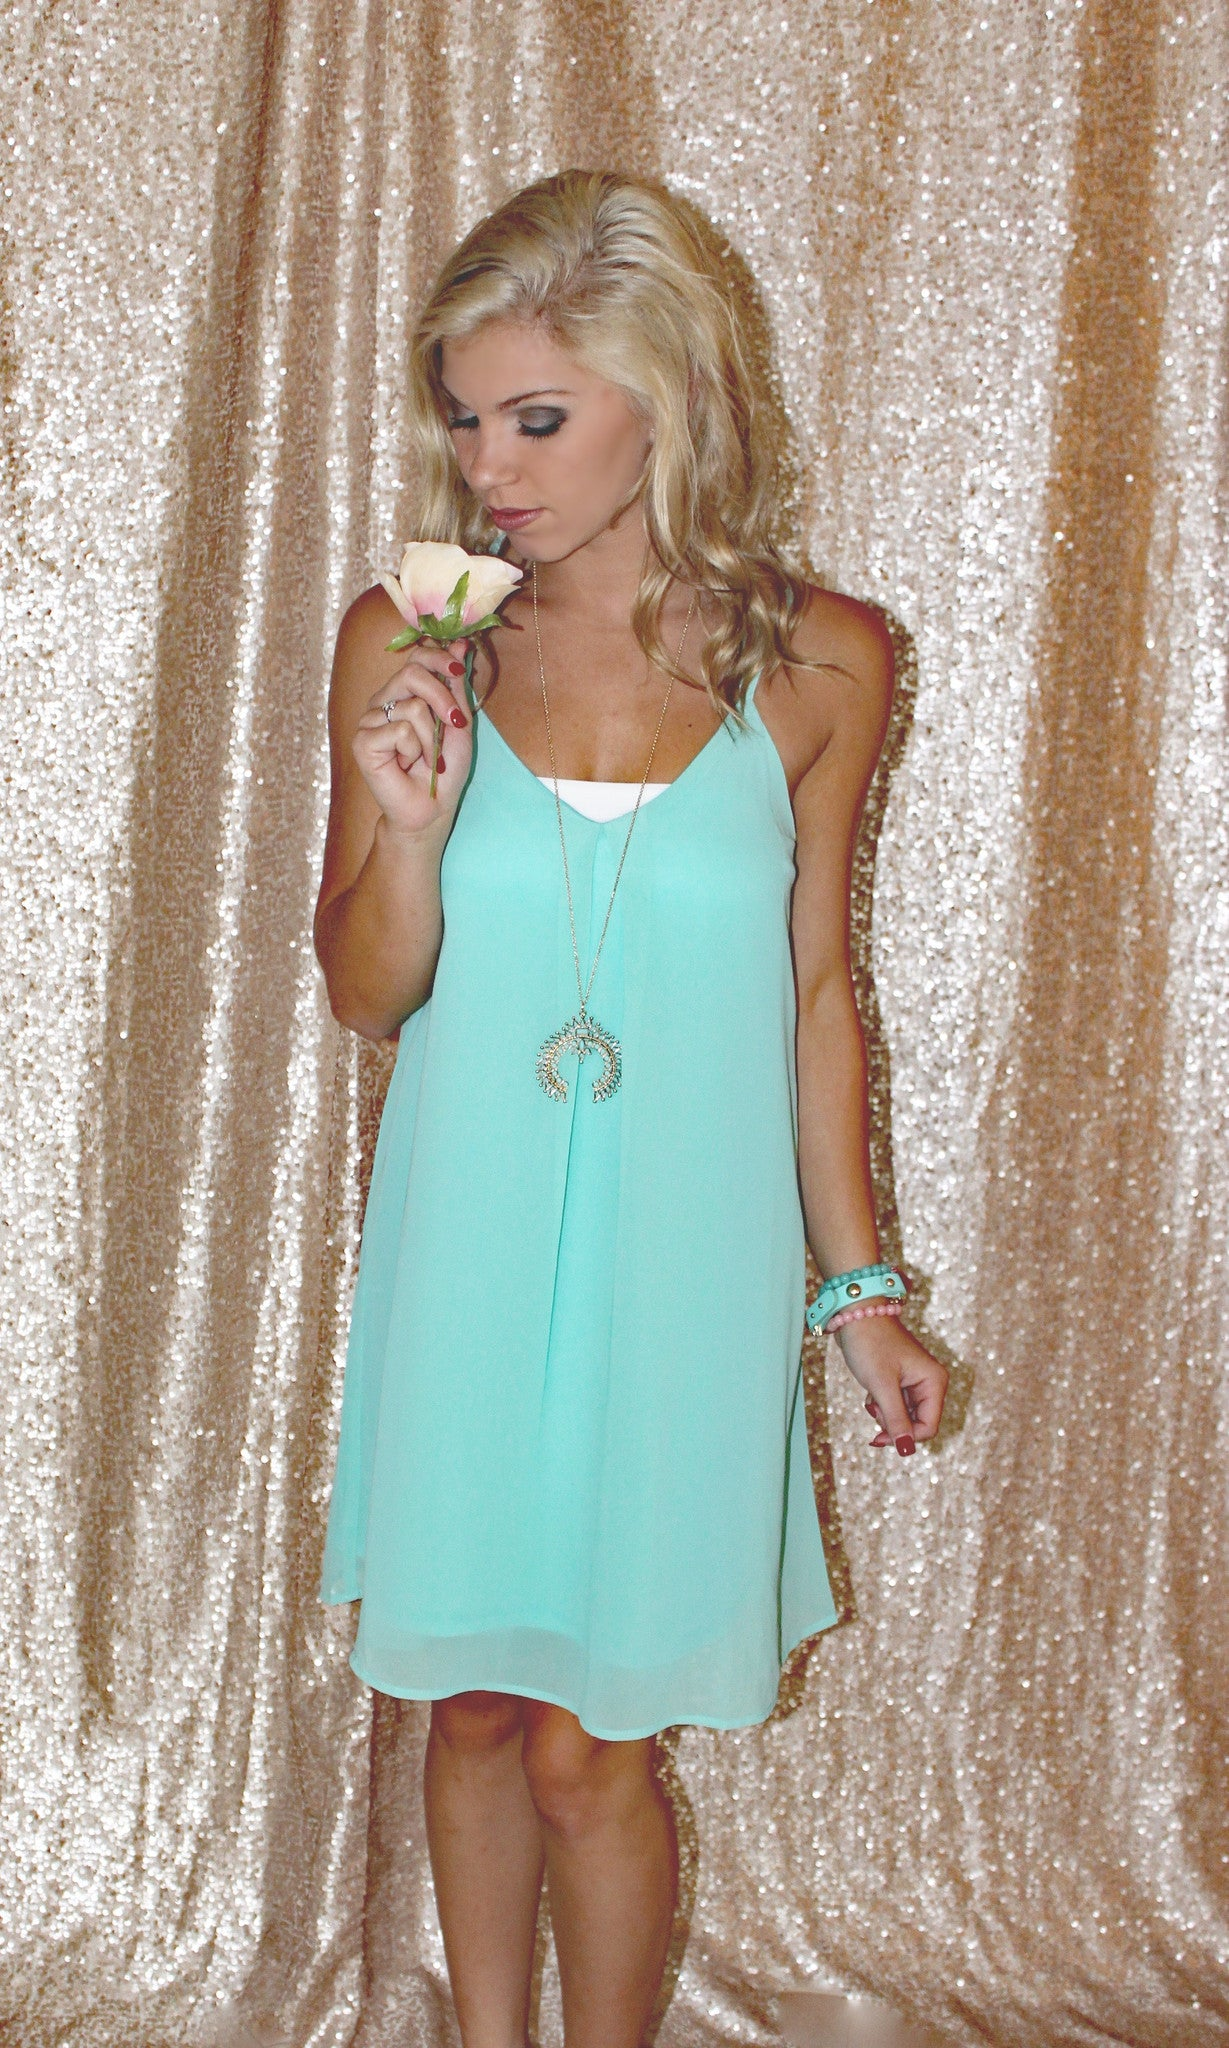 SPRING FLING DRESS - Annalee Rose Boutique